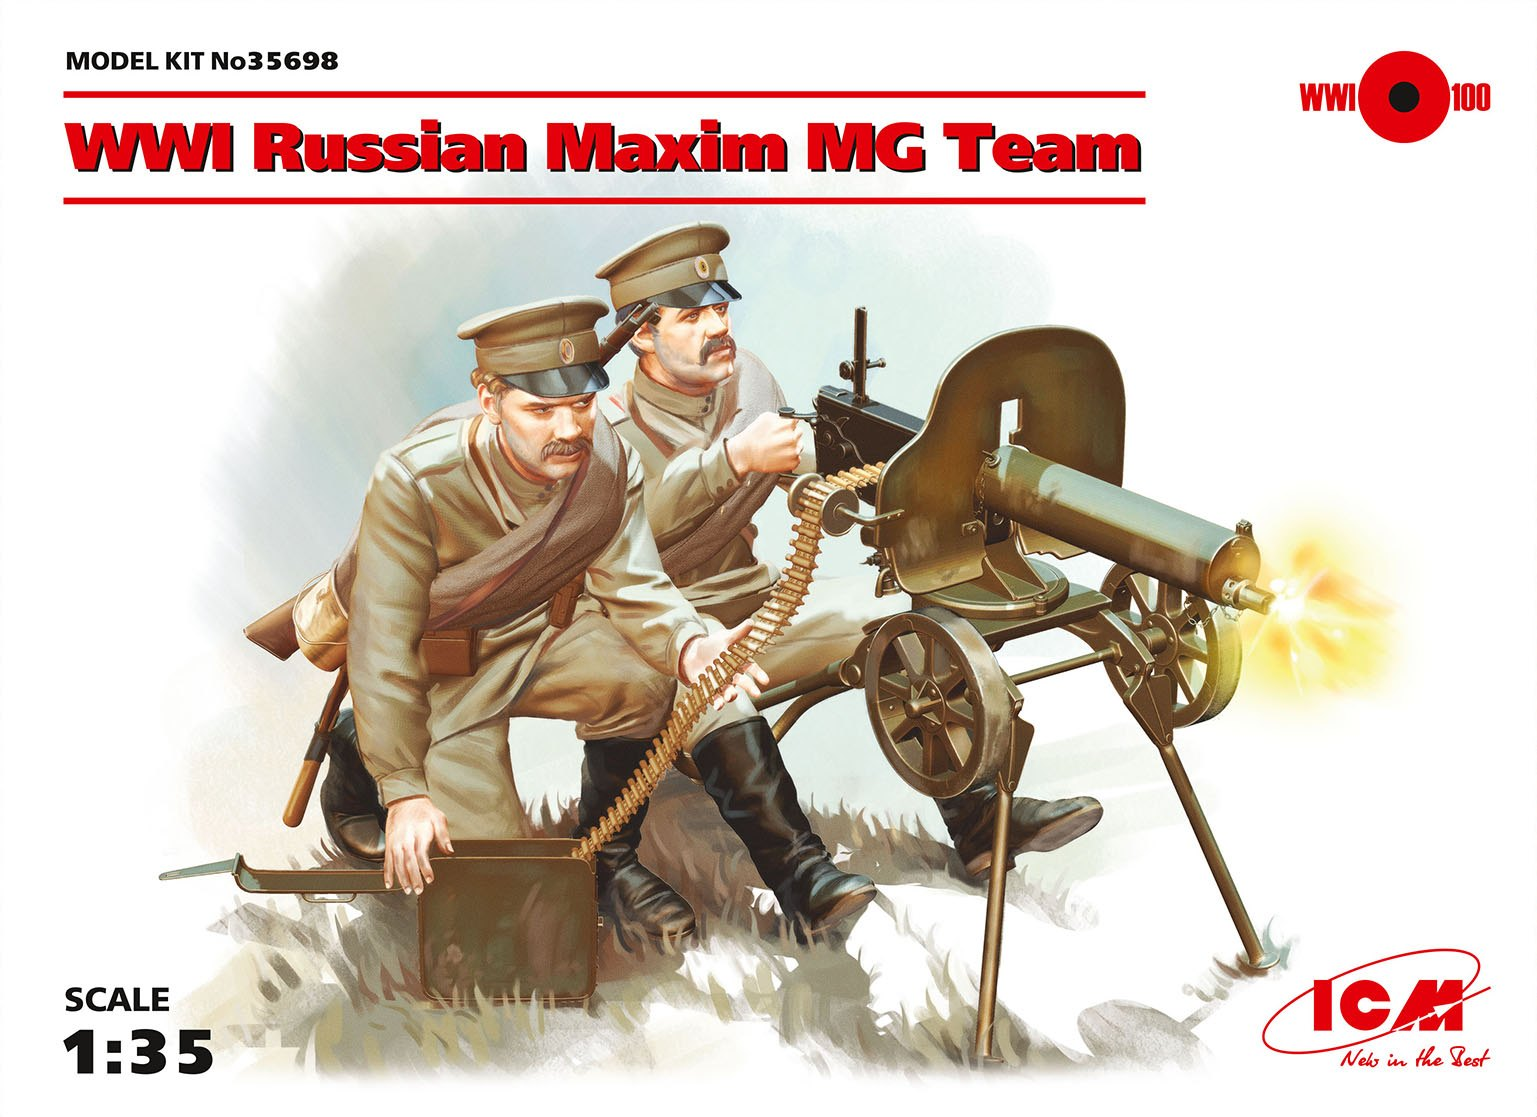 ICM 1/35 Russian Maxim MG Team # 35698